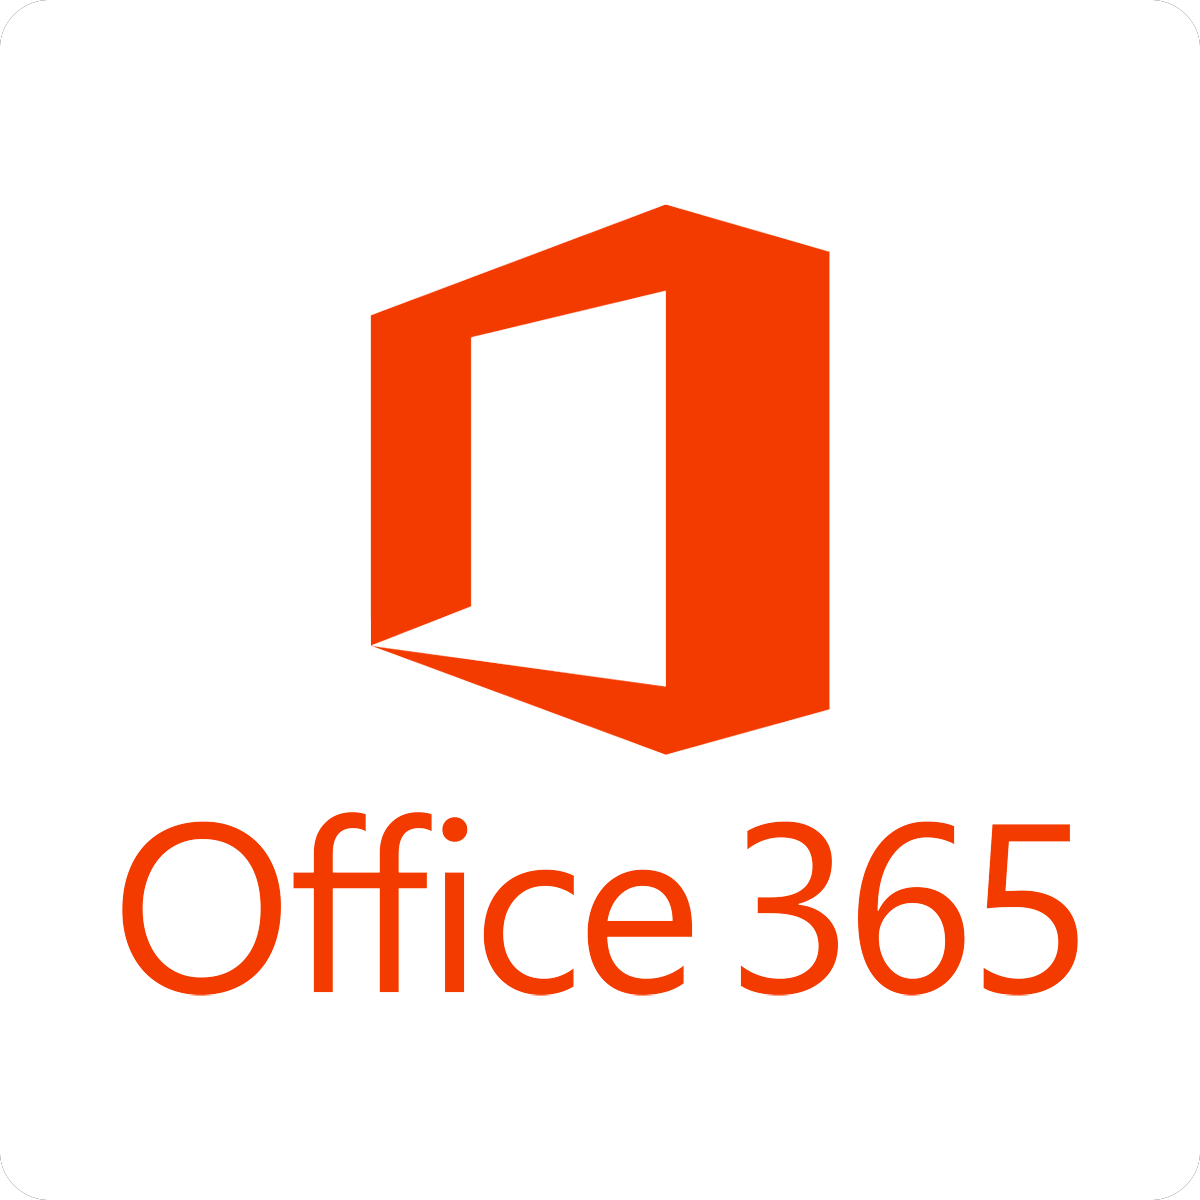 Office 365 icon and link to webpage